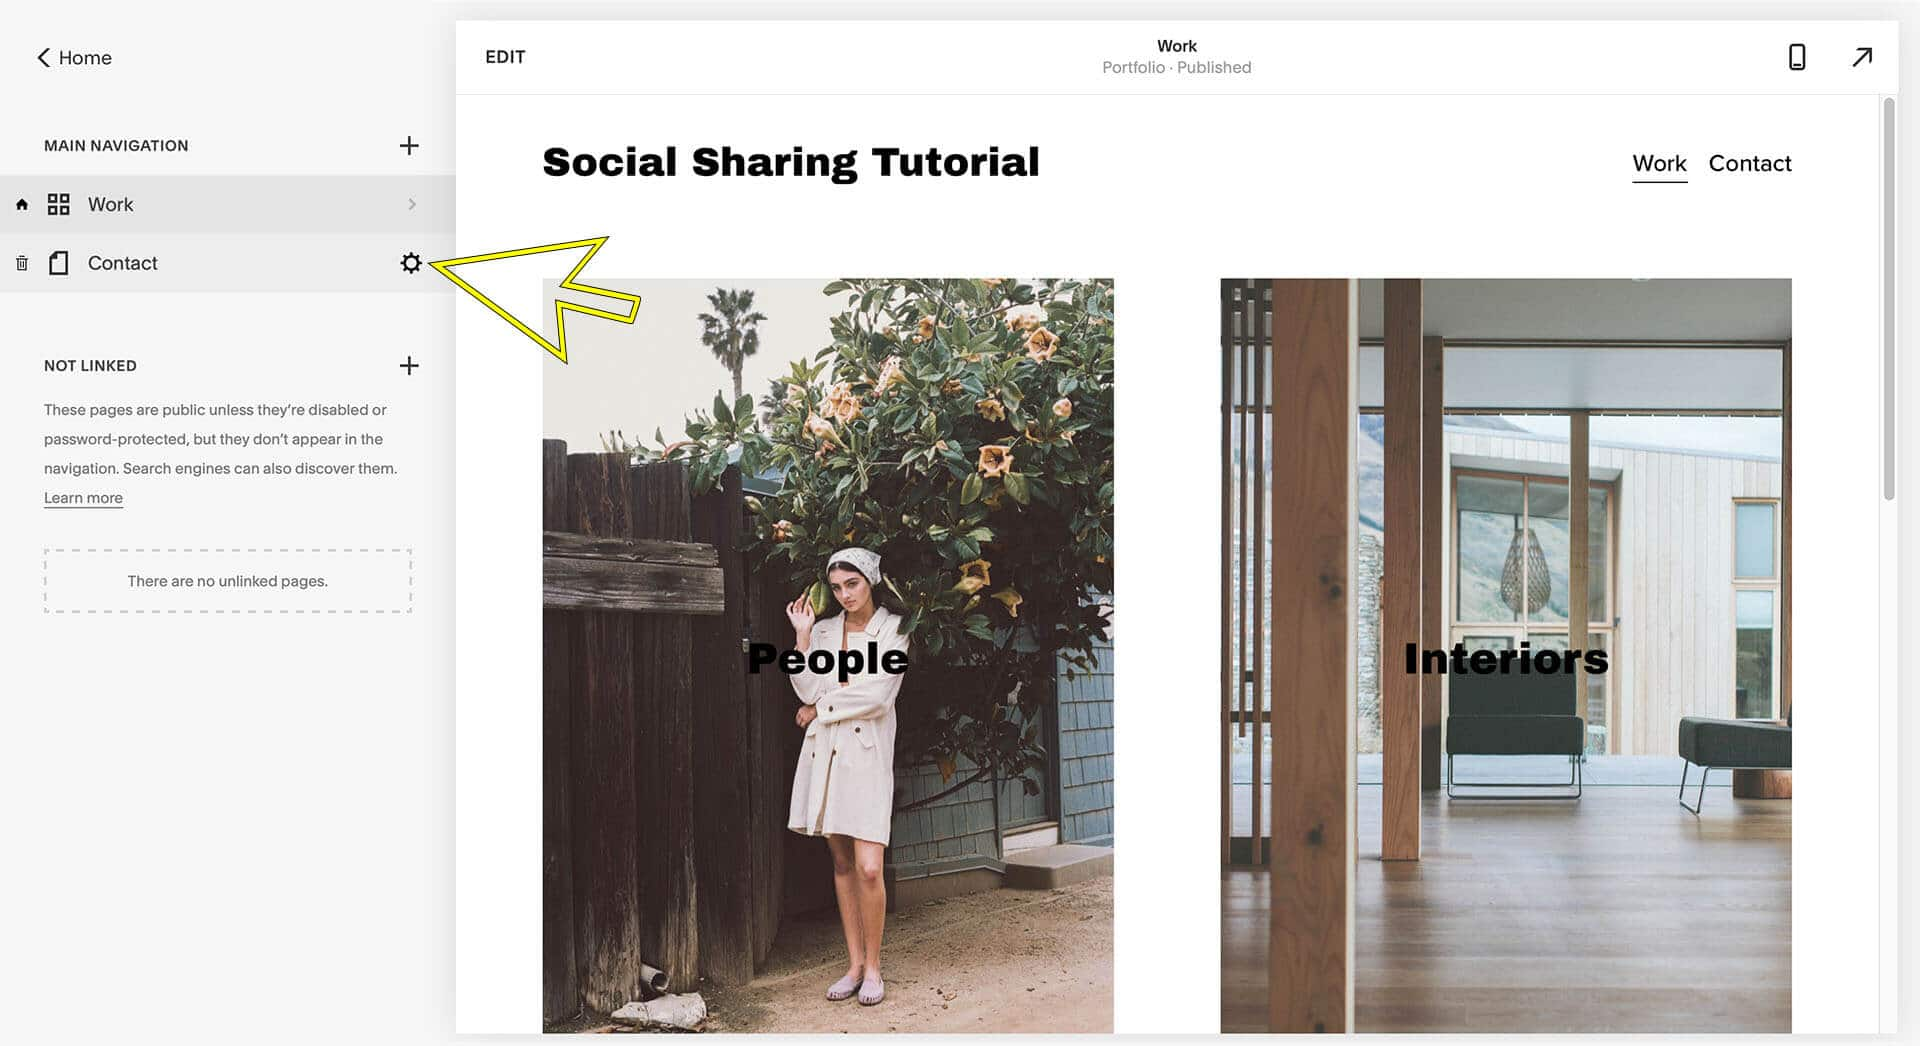 squarespace social sharing image tutorial page settings